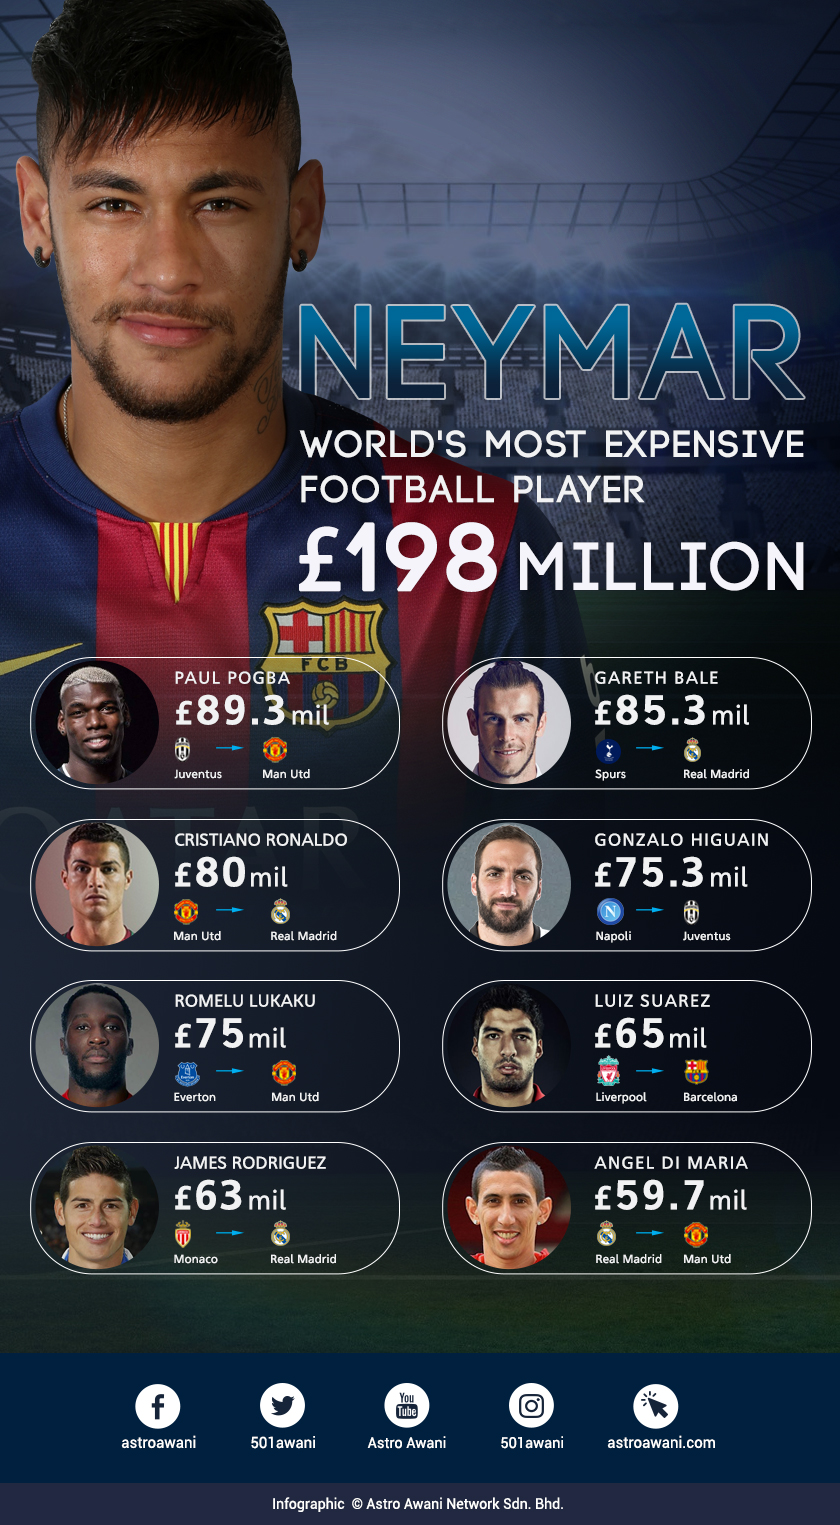 Neymar completed his world-record transfer of £198 million (approximately RM1.1 billion) from Barcelona to Paris St-Germain.